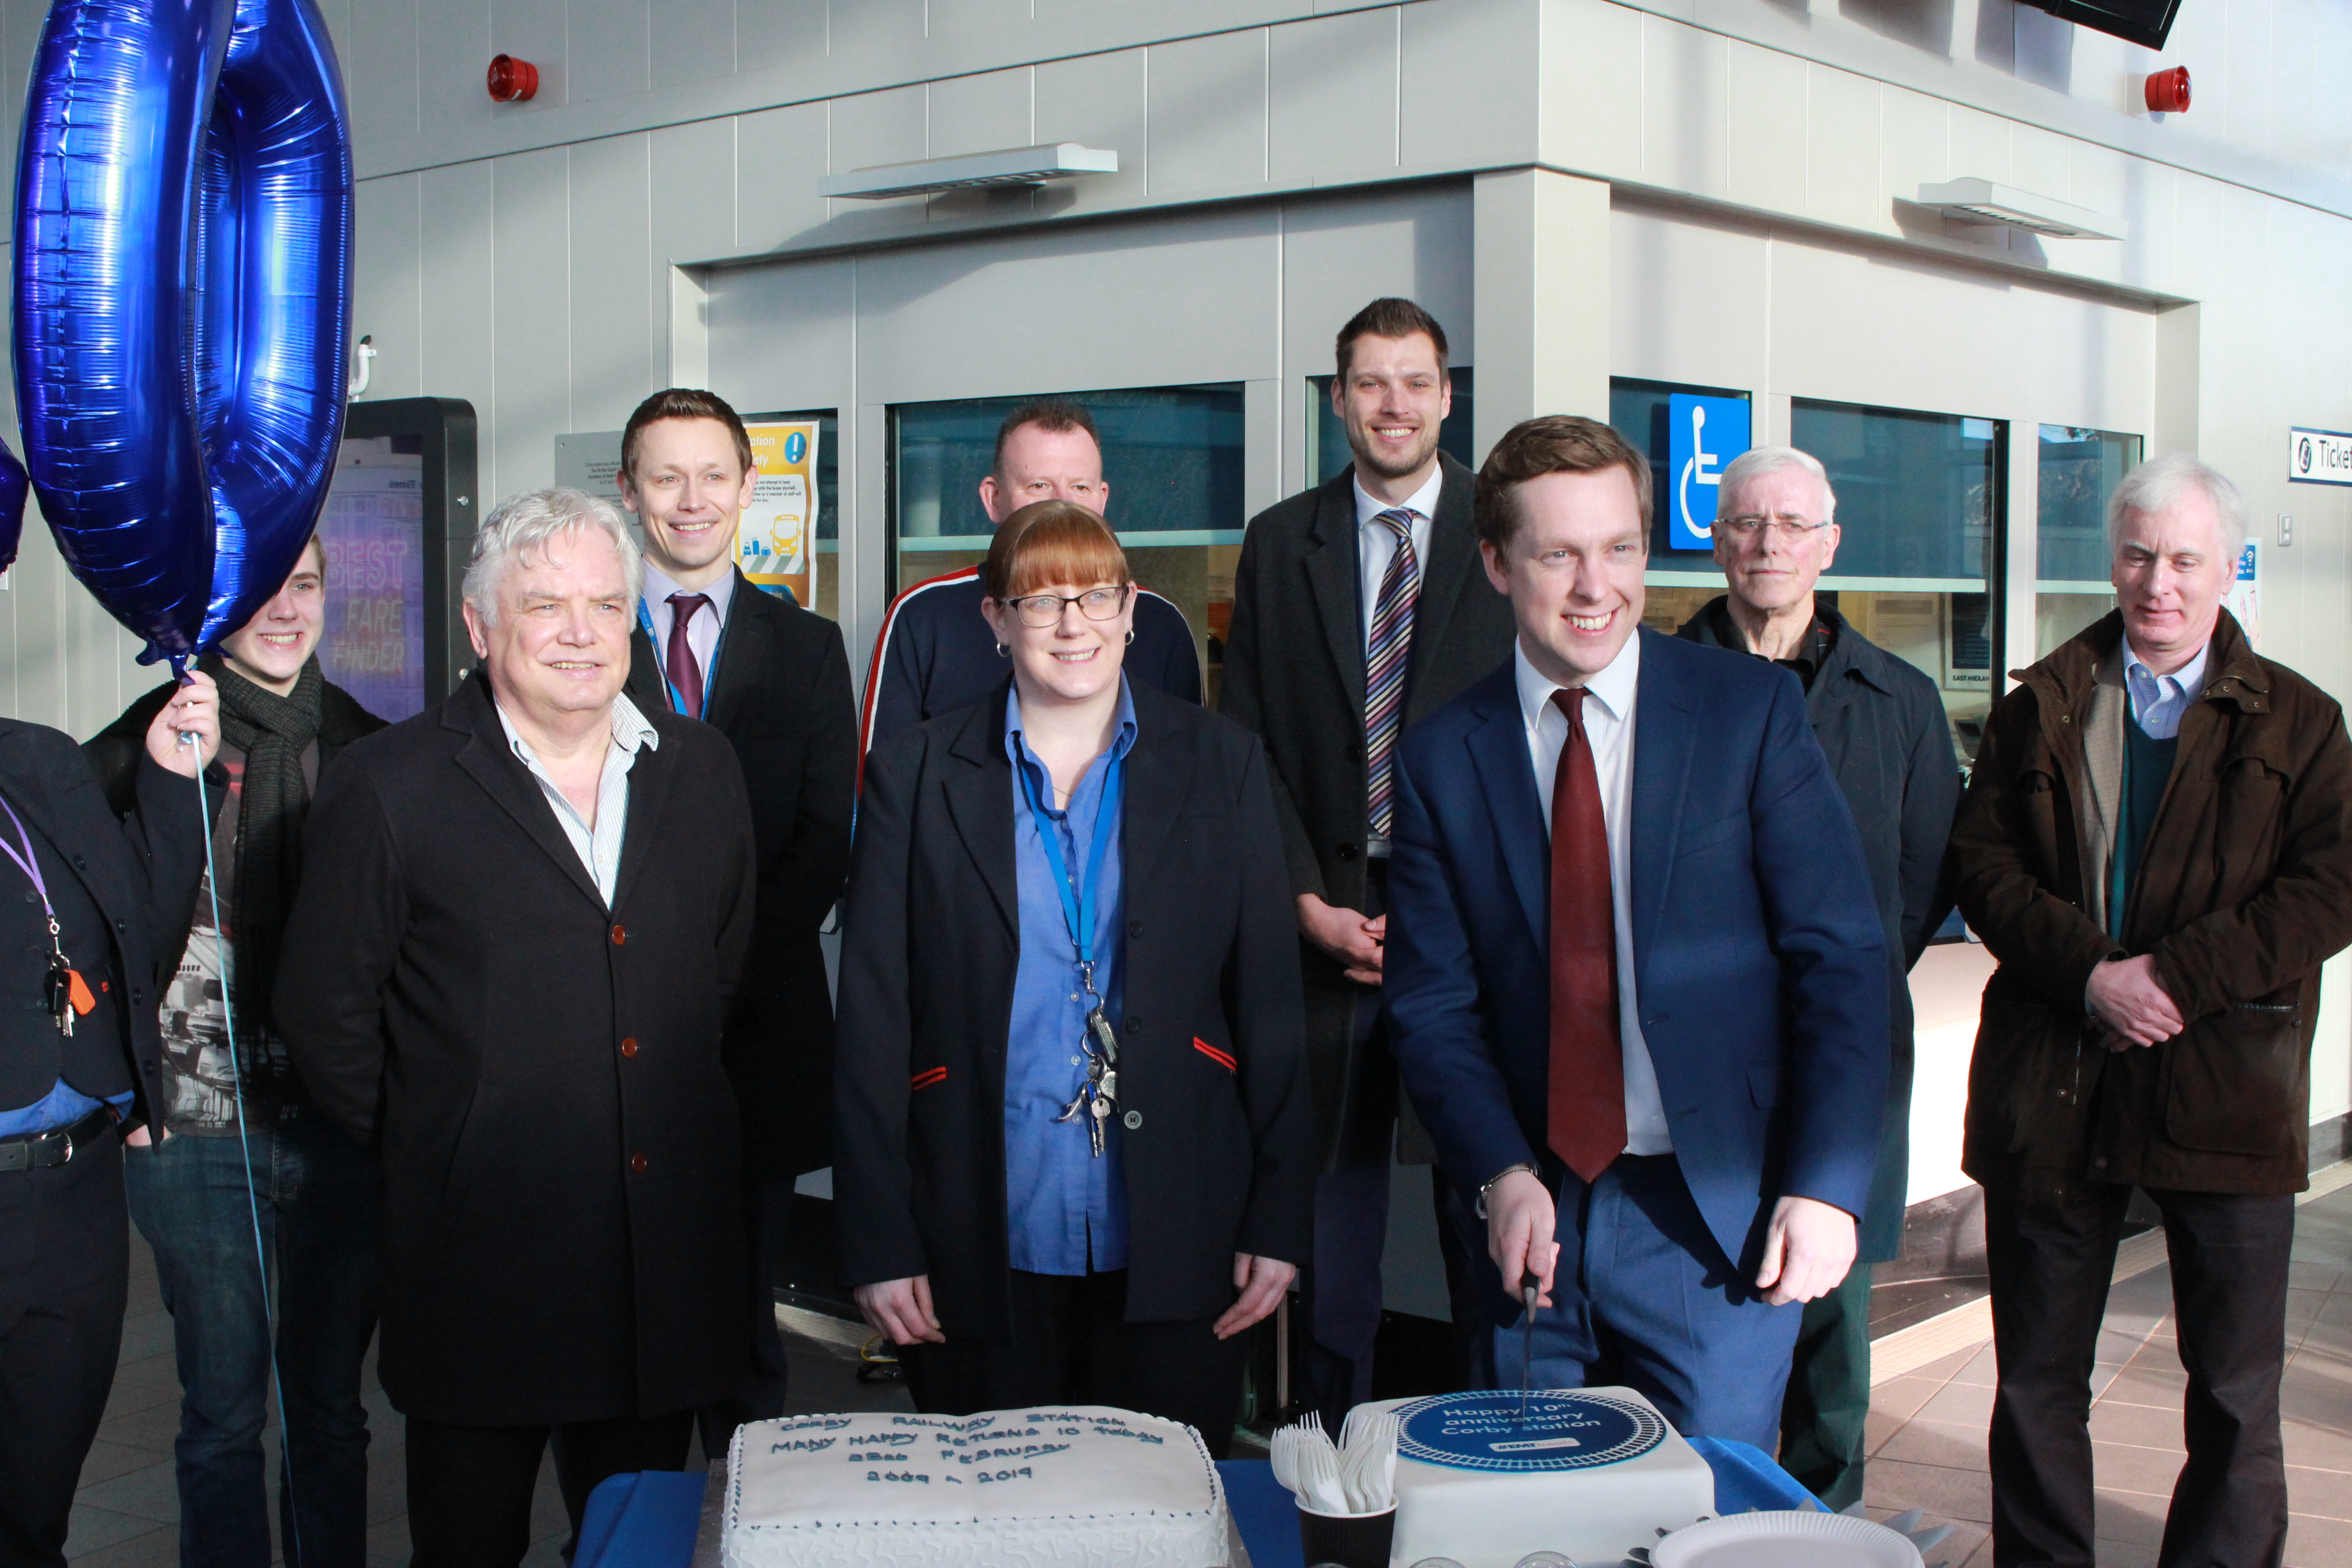 UPDATED with pictures - Media Invite: Celebrating ten years of Corby station